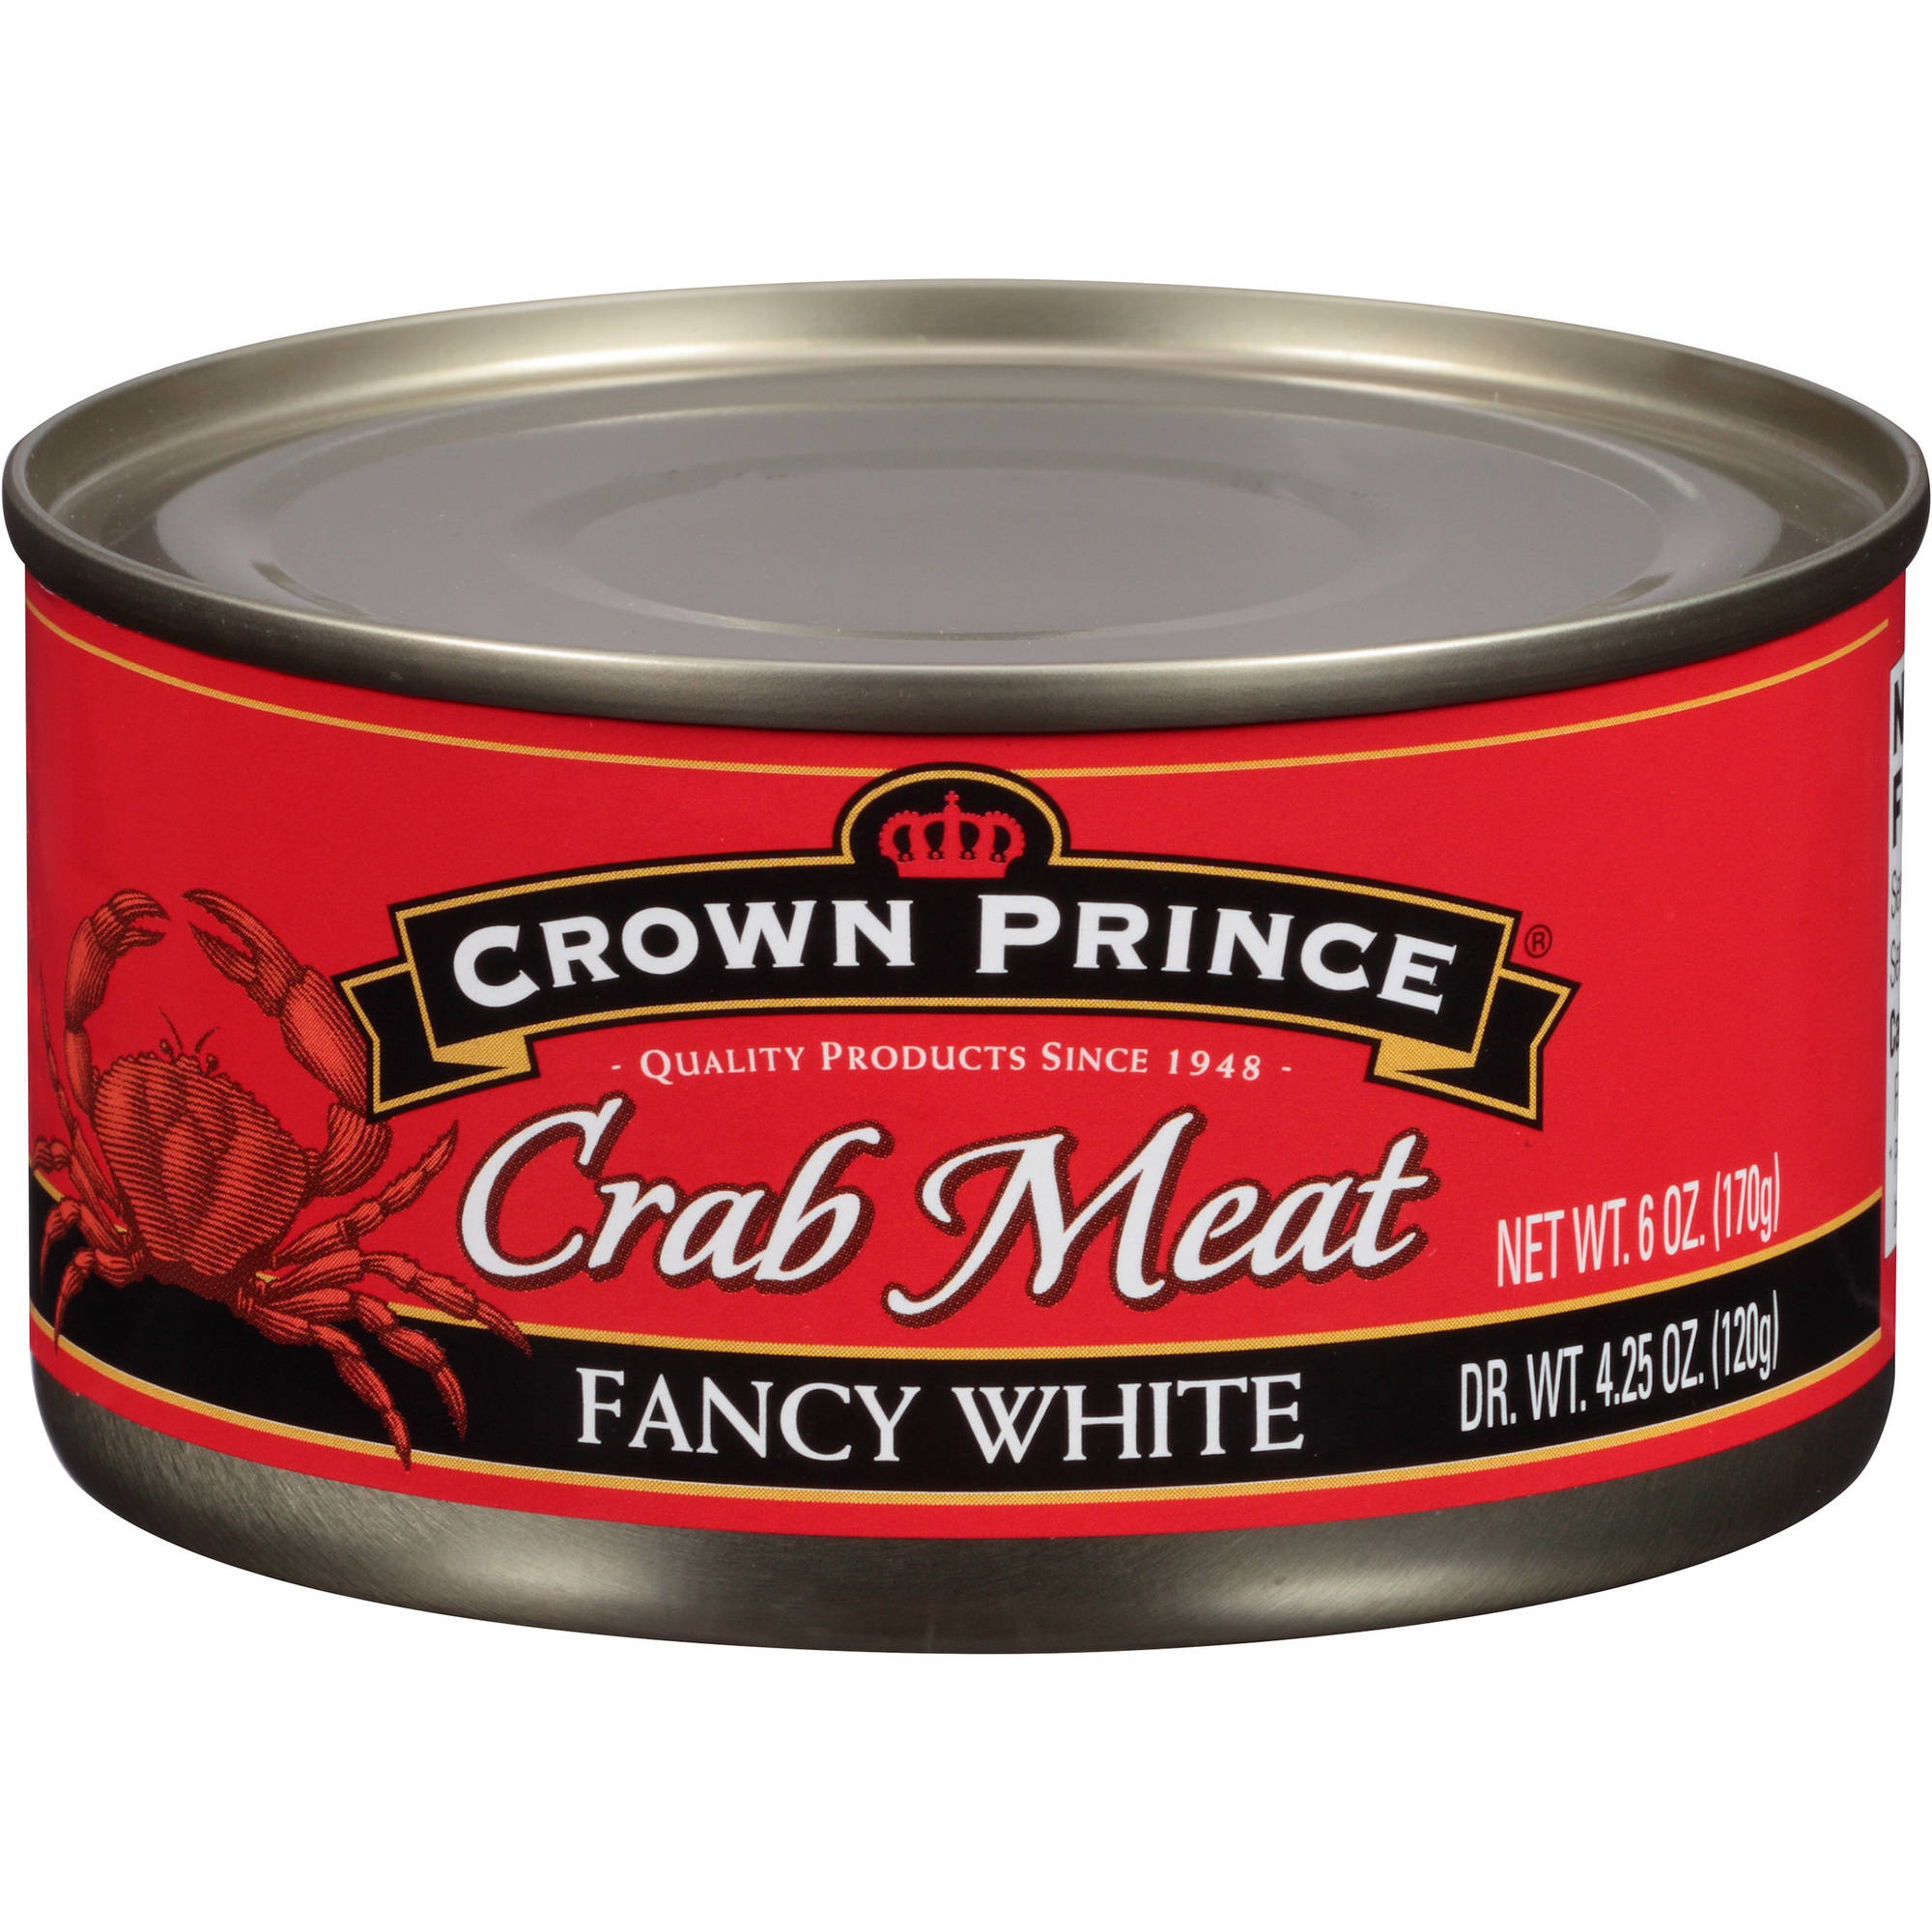 Crown Prince Fancy White Crab Meat, 6 oz by Generic